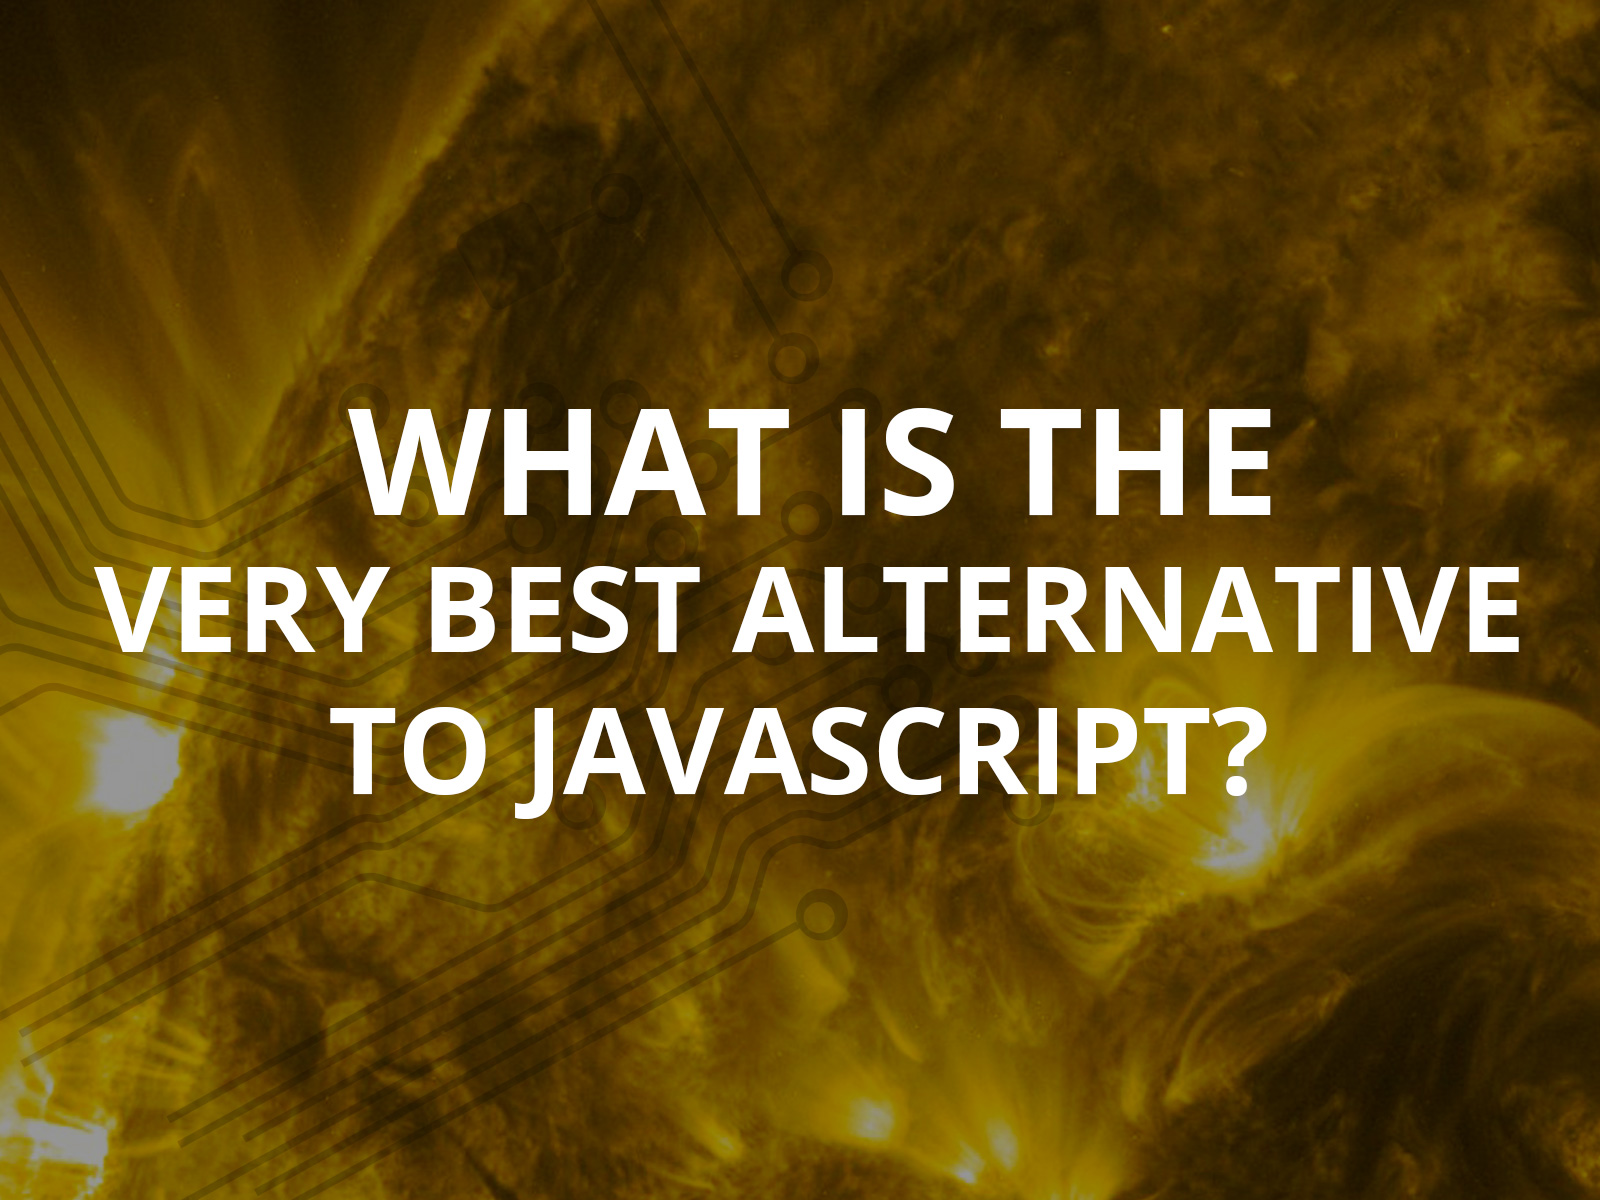 What is the very best alternative to Javascript?